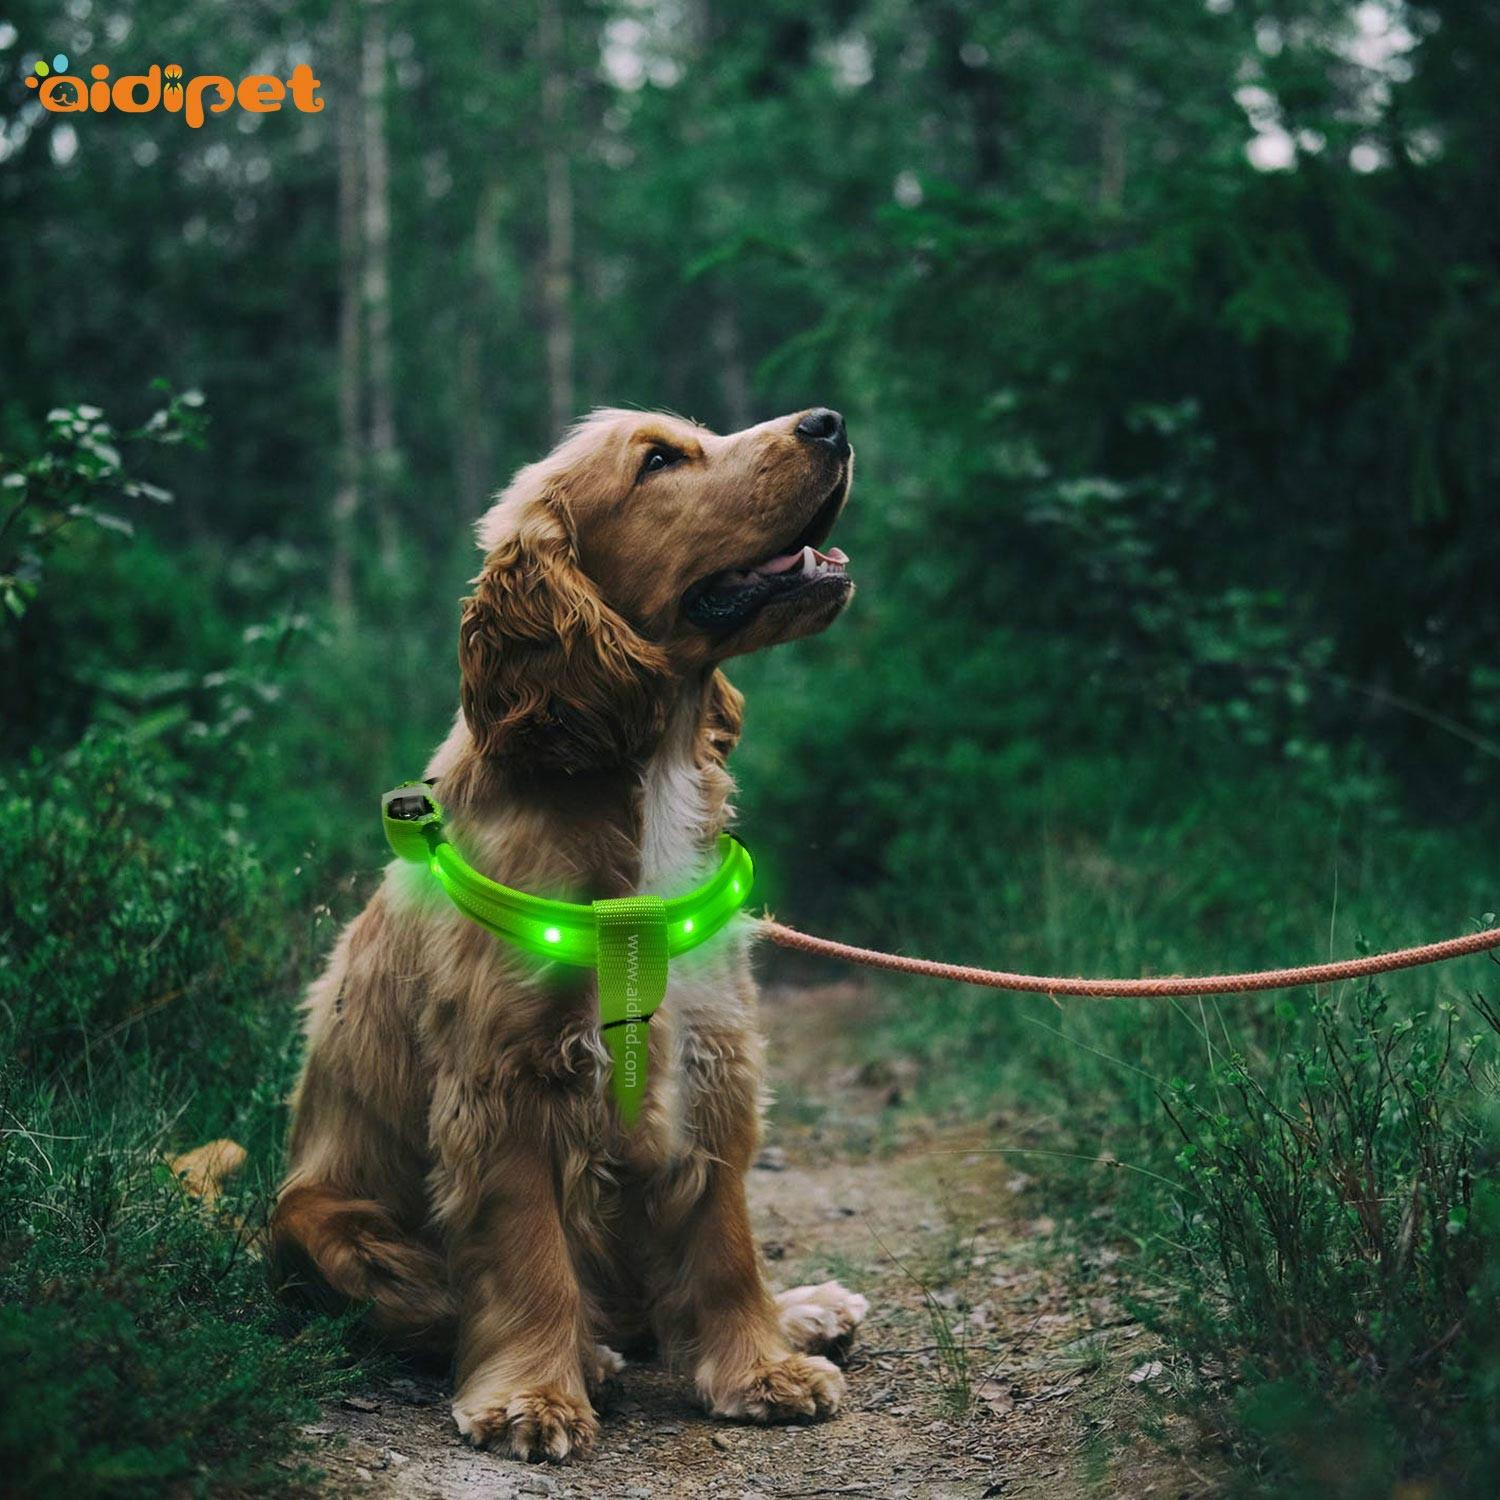 RGBRainbow Led Dog Harness Colorful Factory Price Customized Logo Harness with Led Light for Dogs